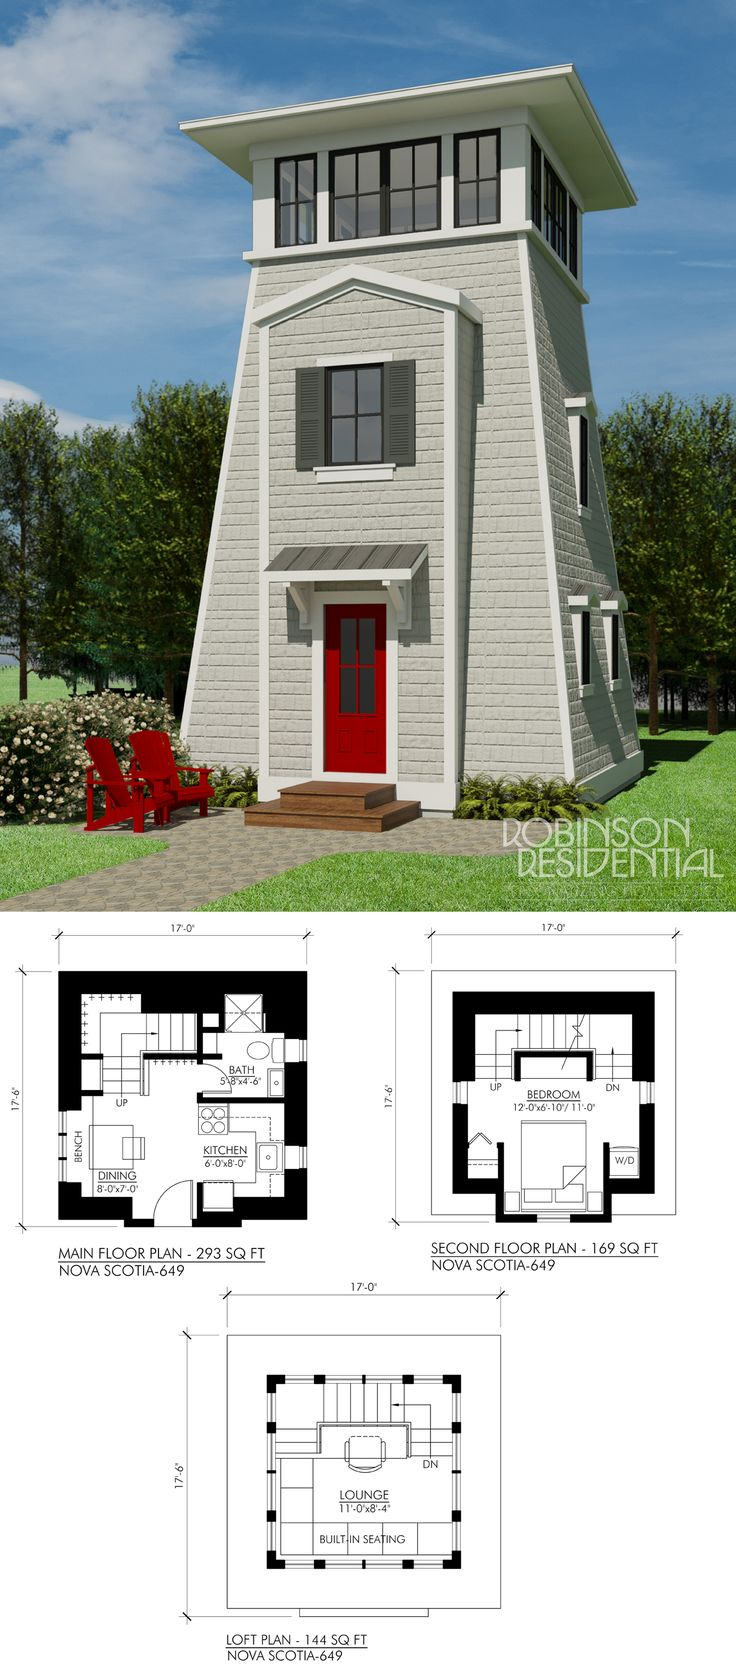 Best 25 small homes ideas on pinterest small home plans for House plans washington state